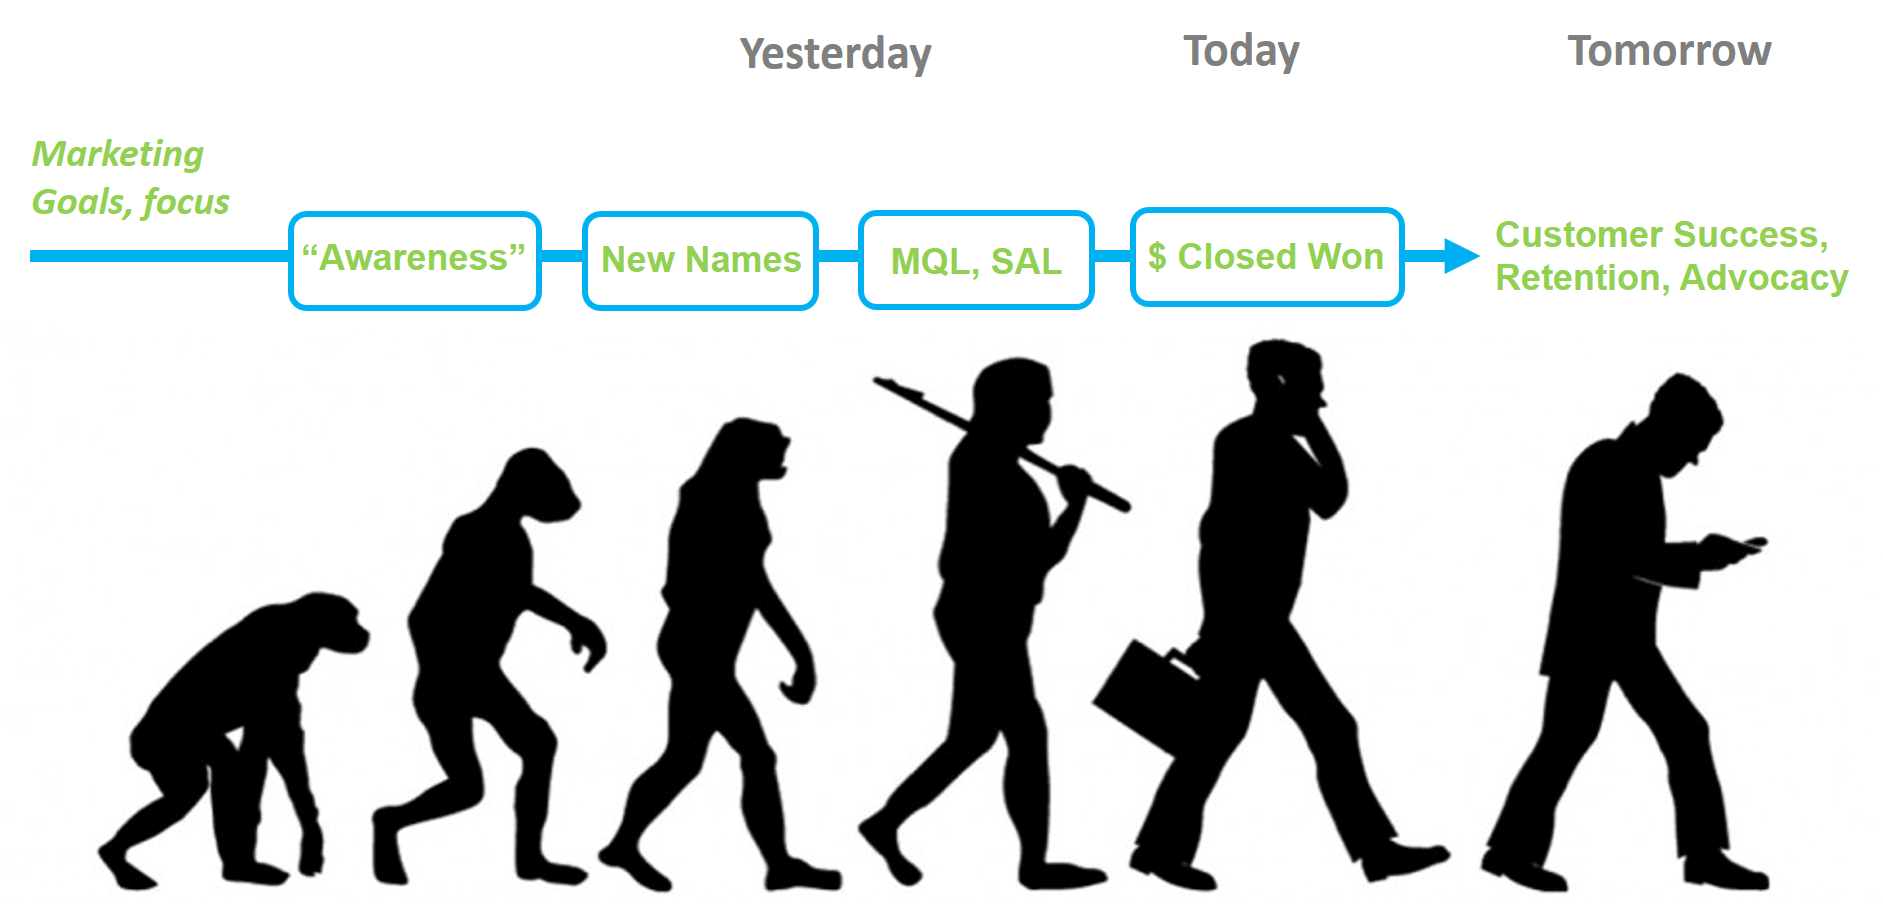 Evolution of Marketing Across Customer Life-cycle